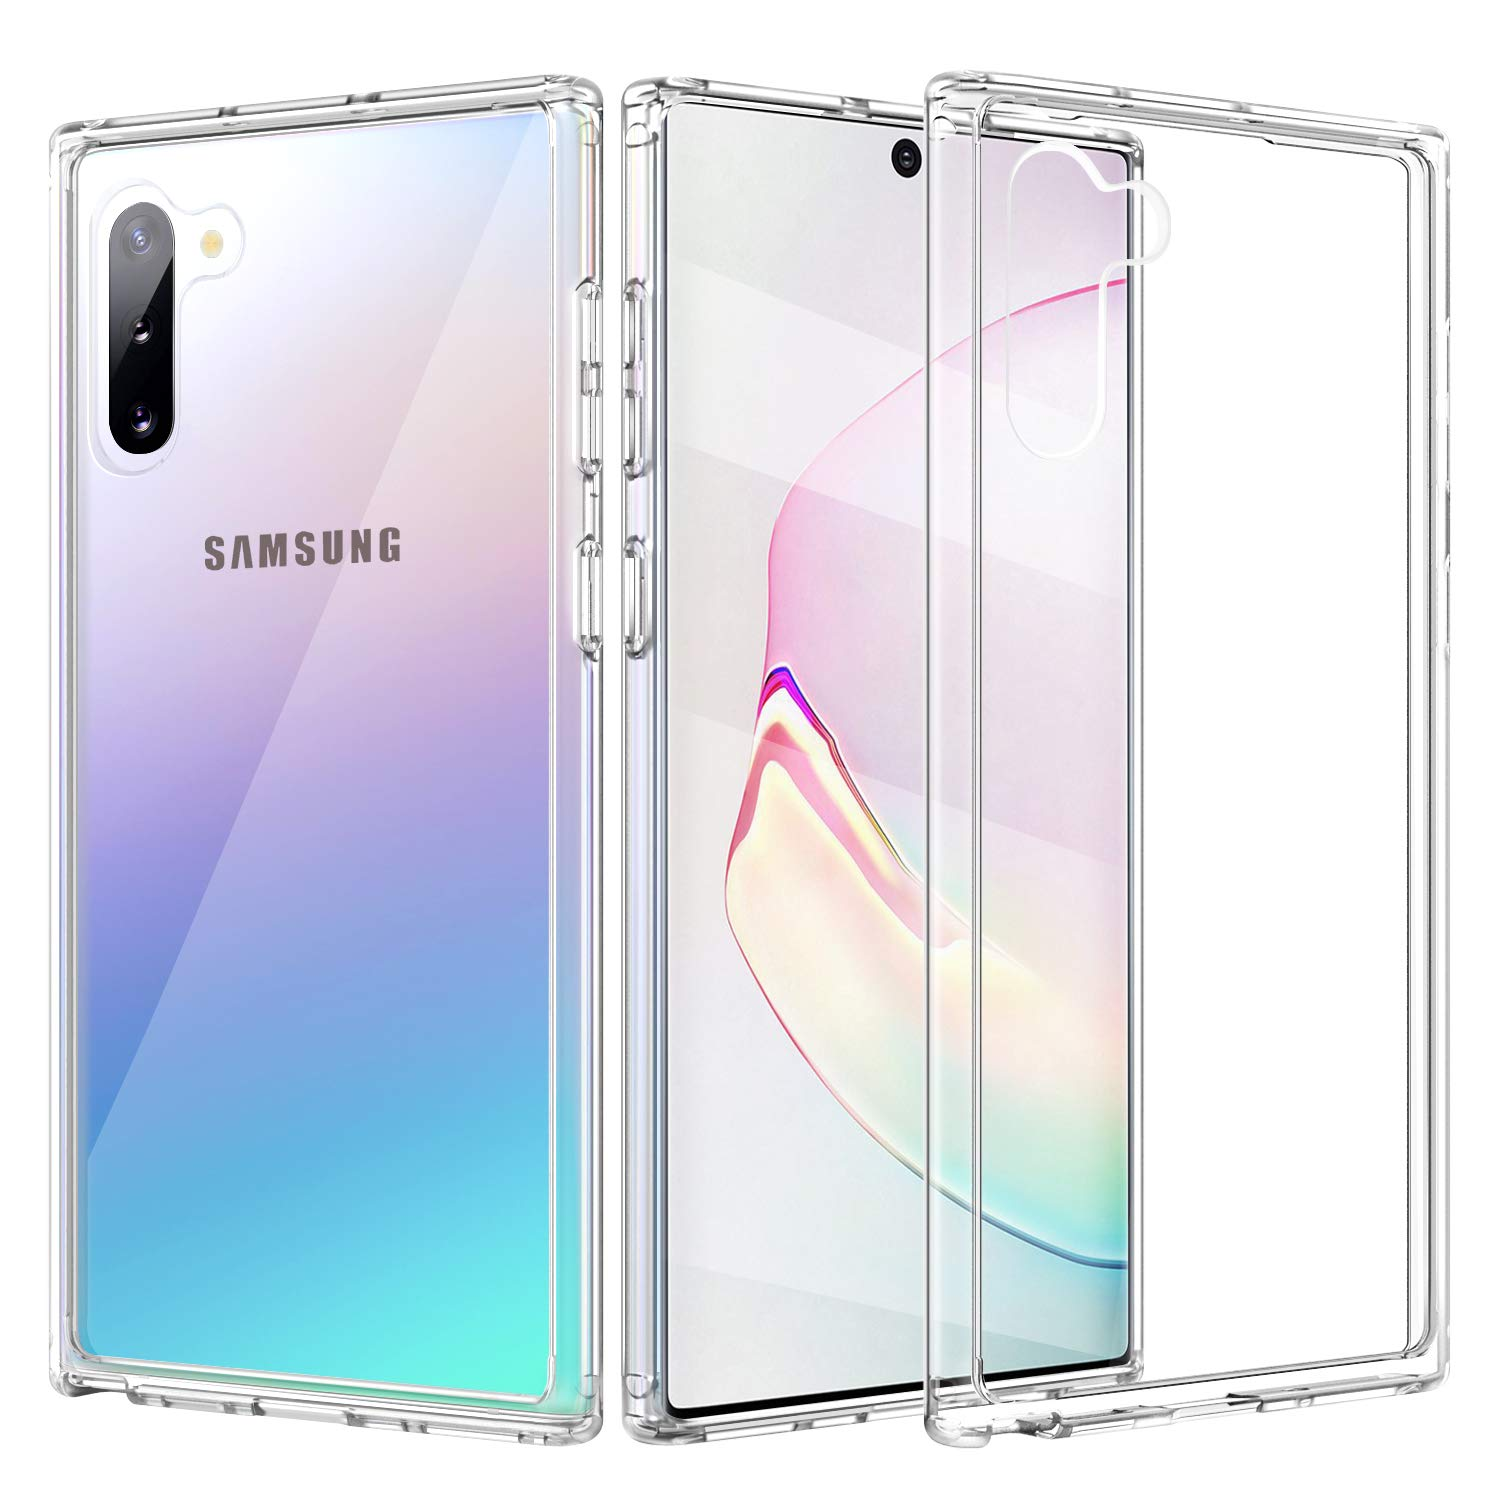 Bakeey Clear Transparent Shockproof PC TPU Protective Case For Samsung Galaxy Note 10 Plus/Note 10+ 5G